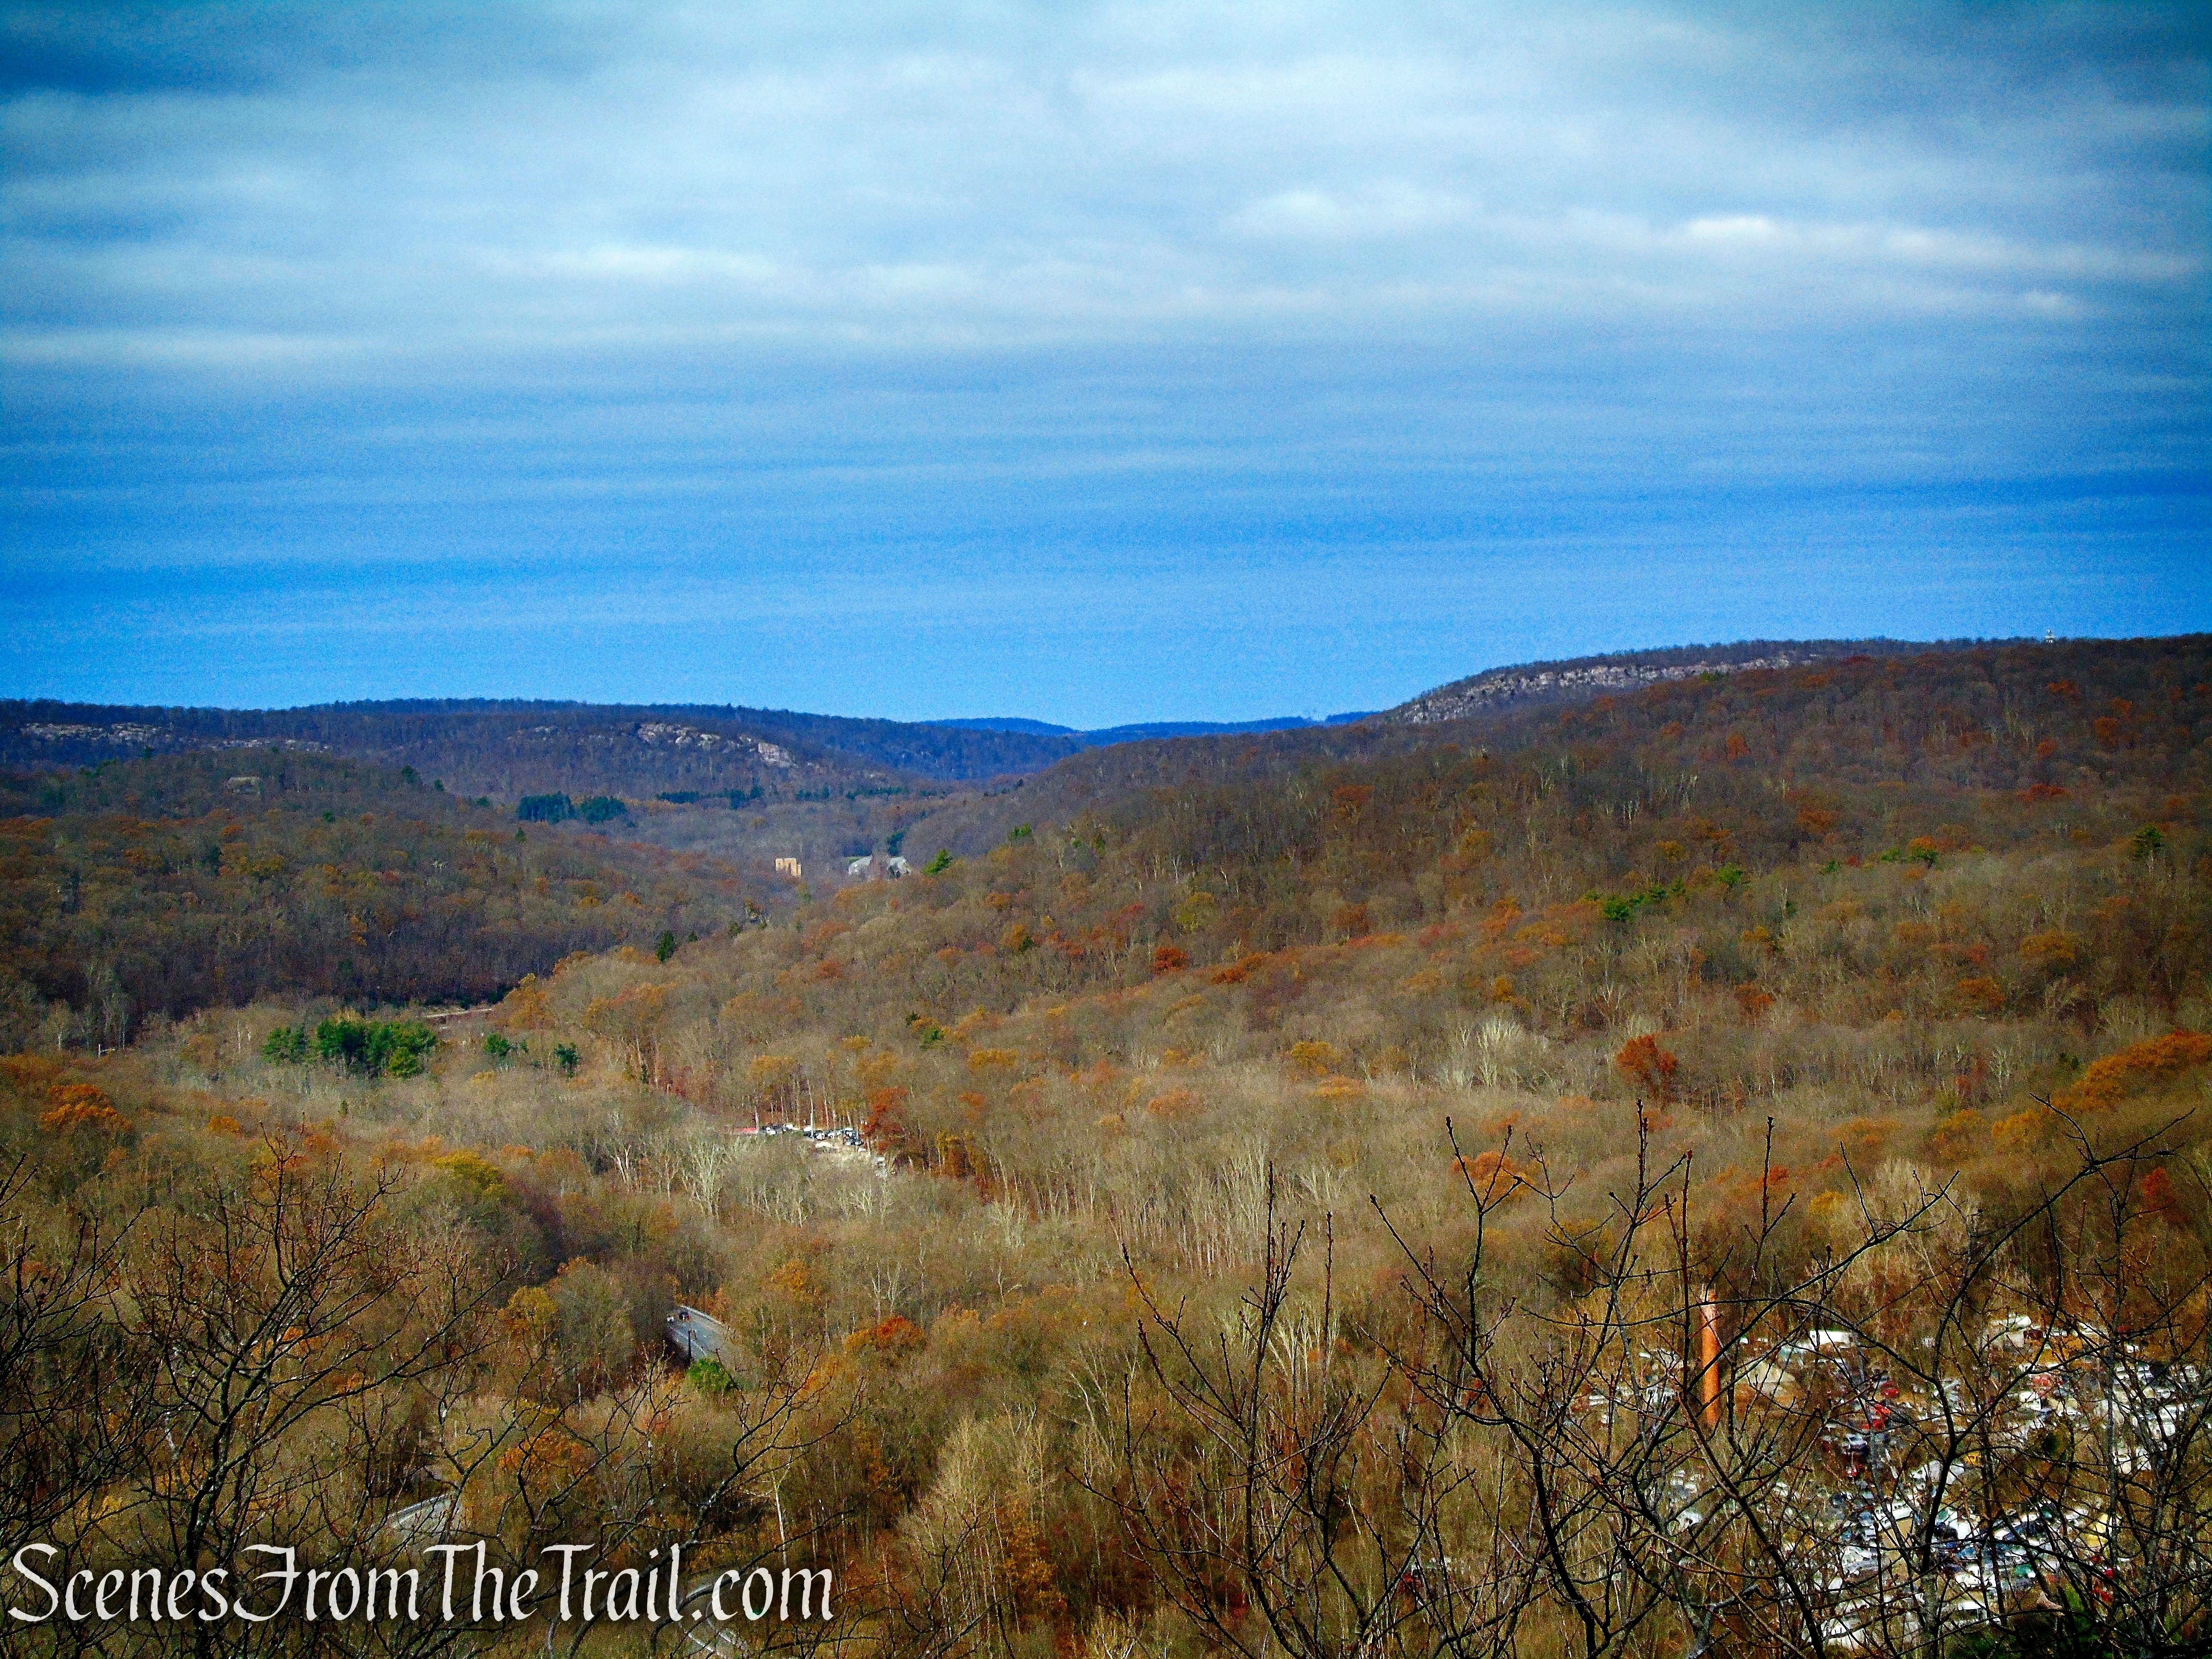 Blue Trail Overlook - Silas Condict County Park